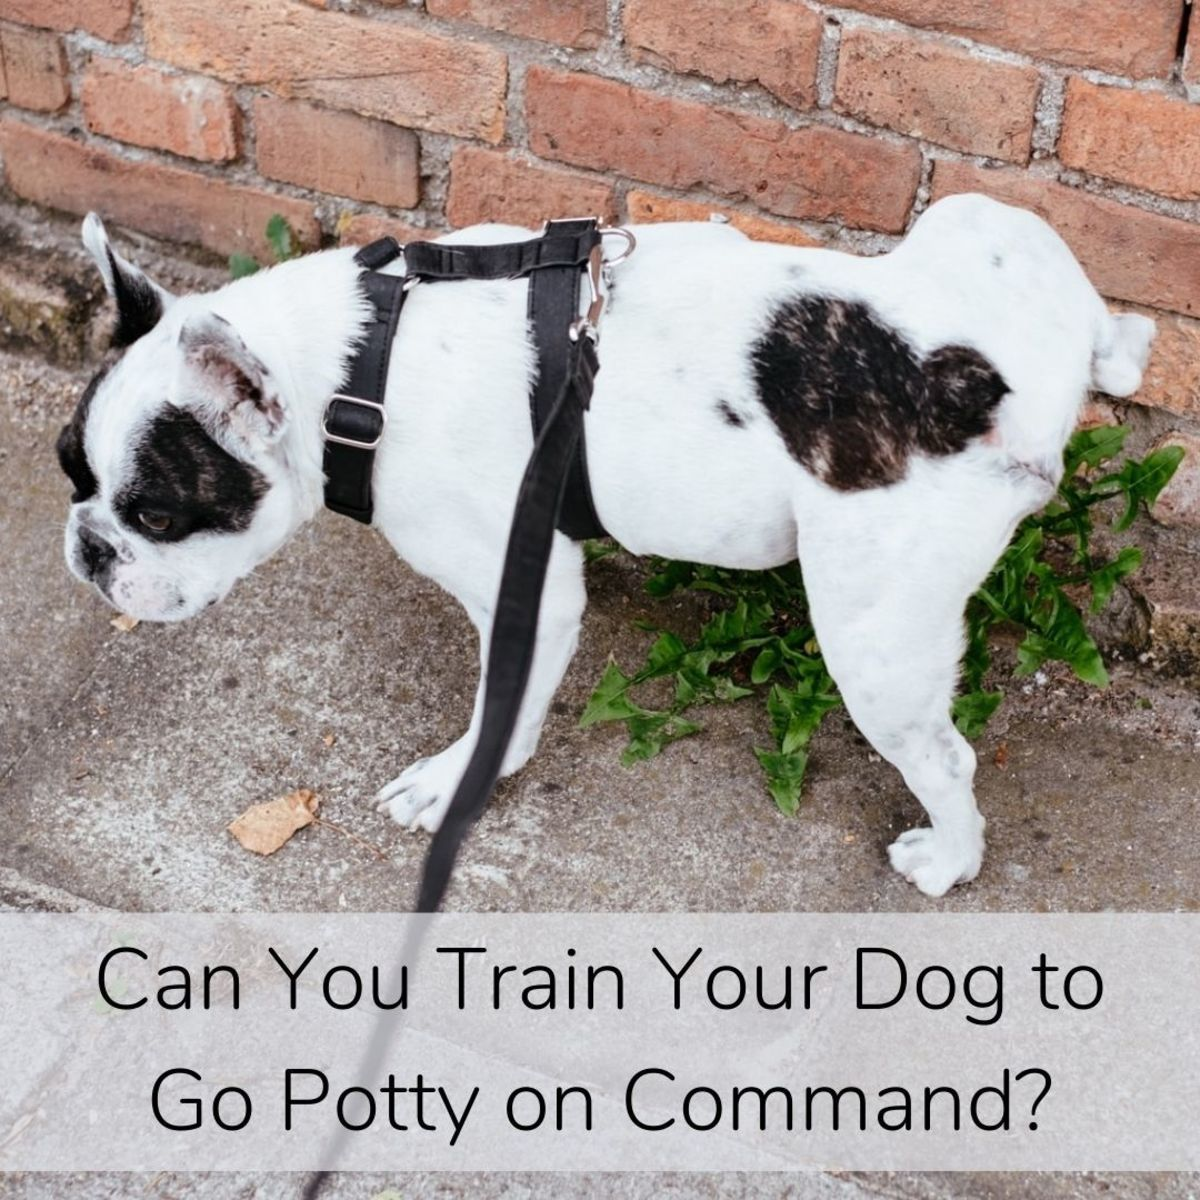 By putting the action of going potty on cue, you will help your dog generalize, upping the chances for going in areas that do not look much familiar.